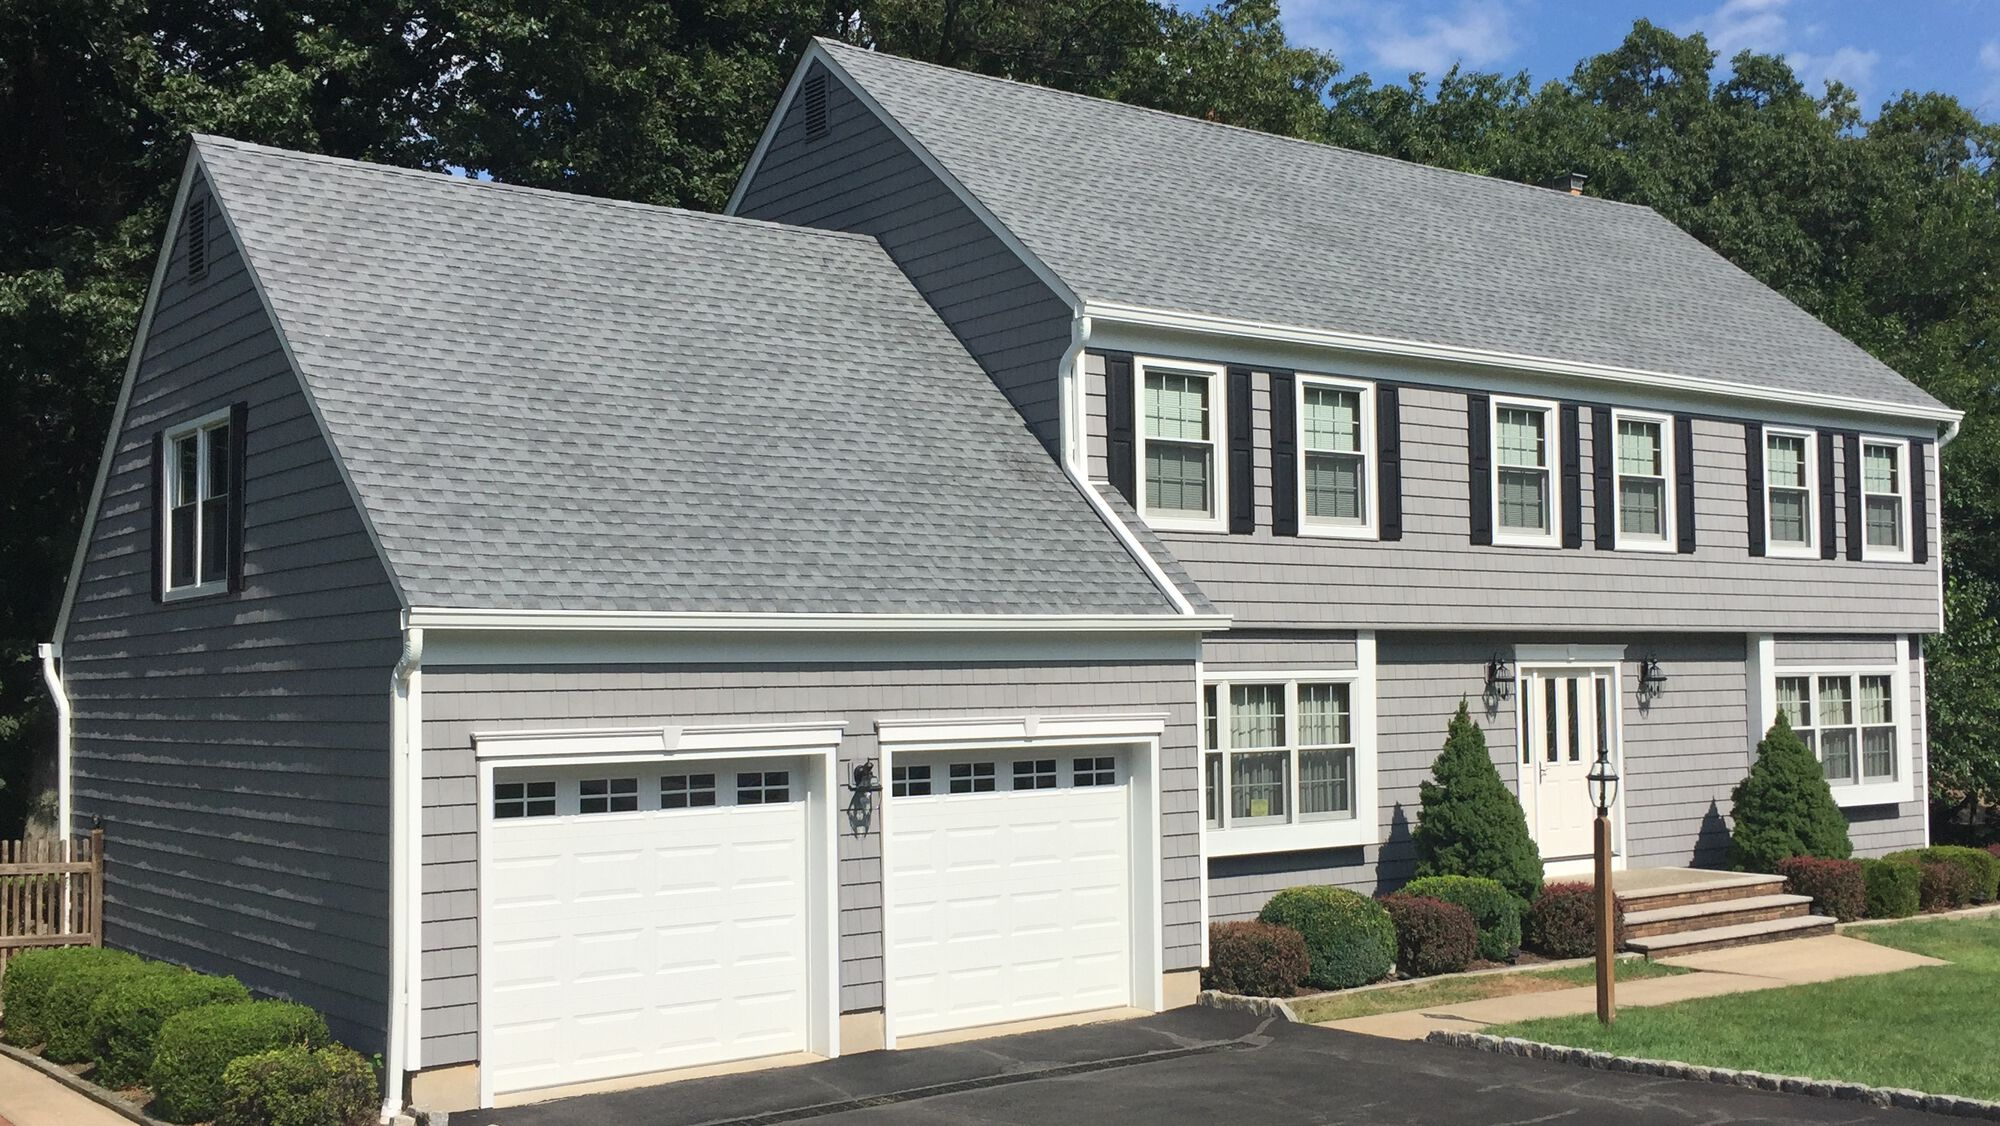 Certainteed Siding & Roofing in Morris County NJ